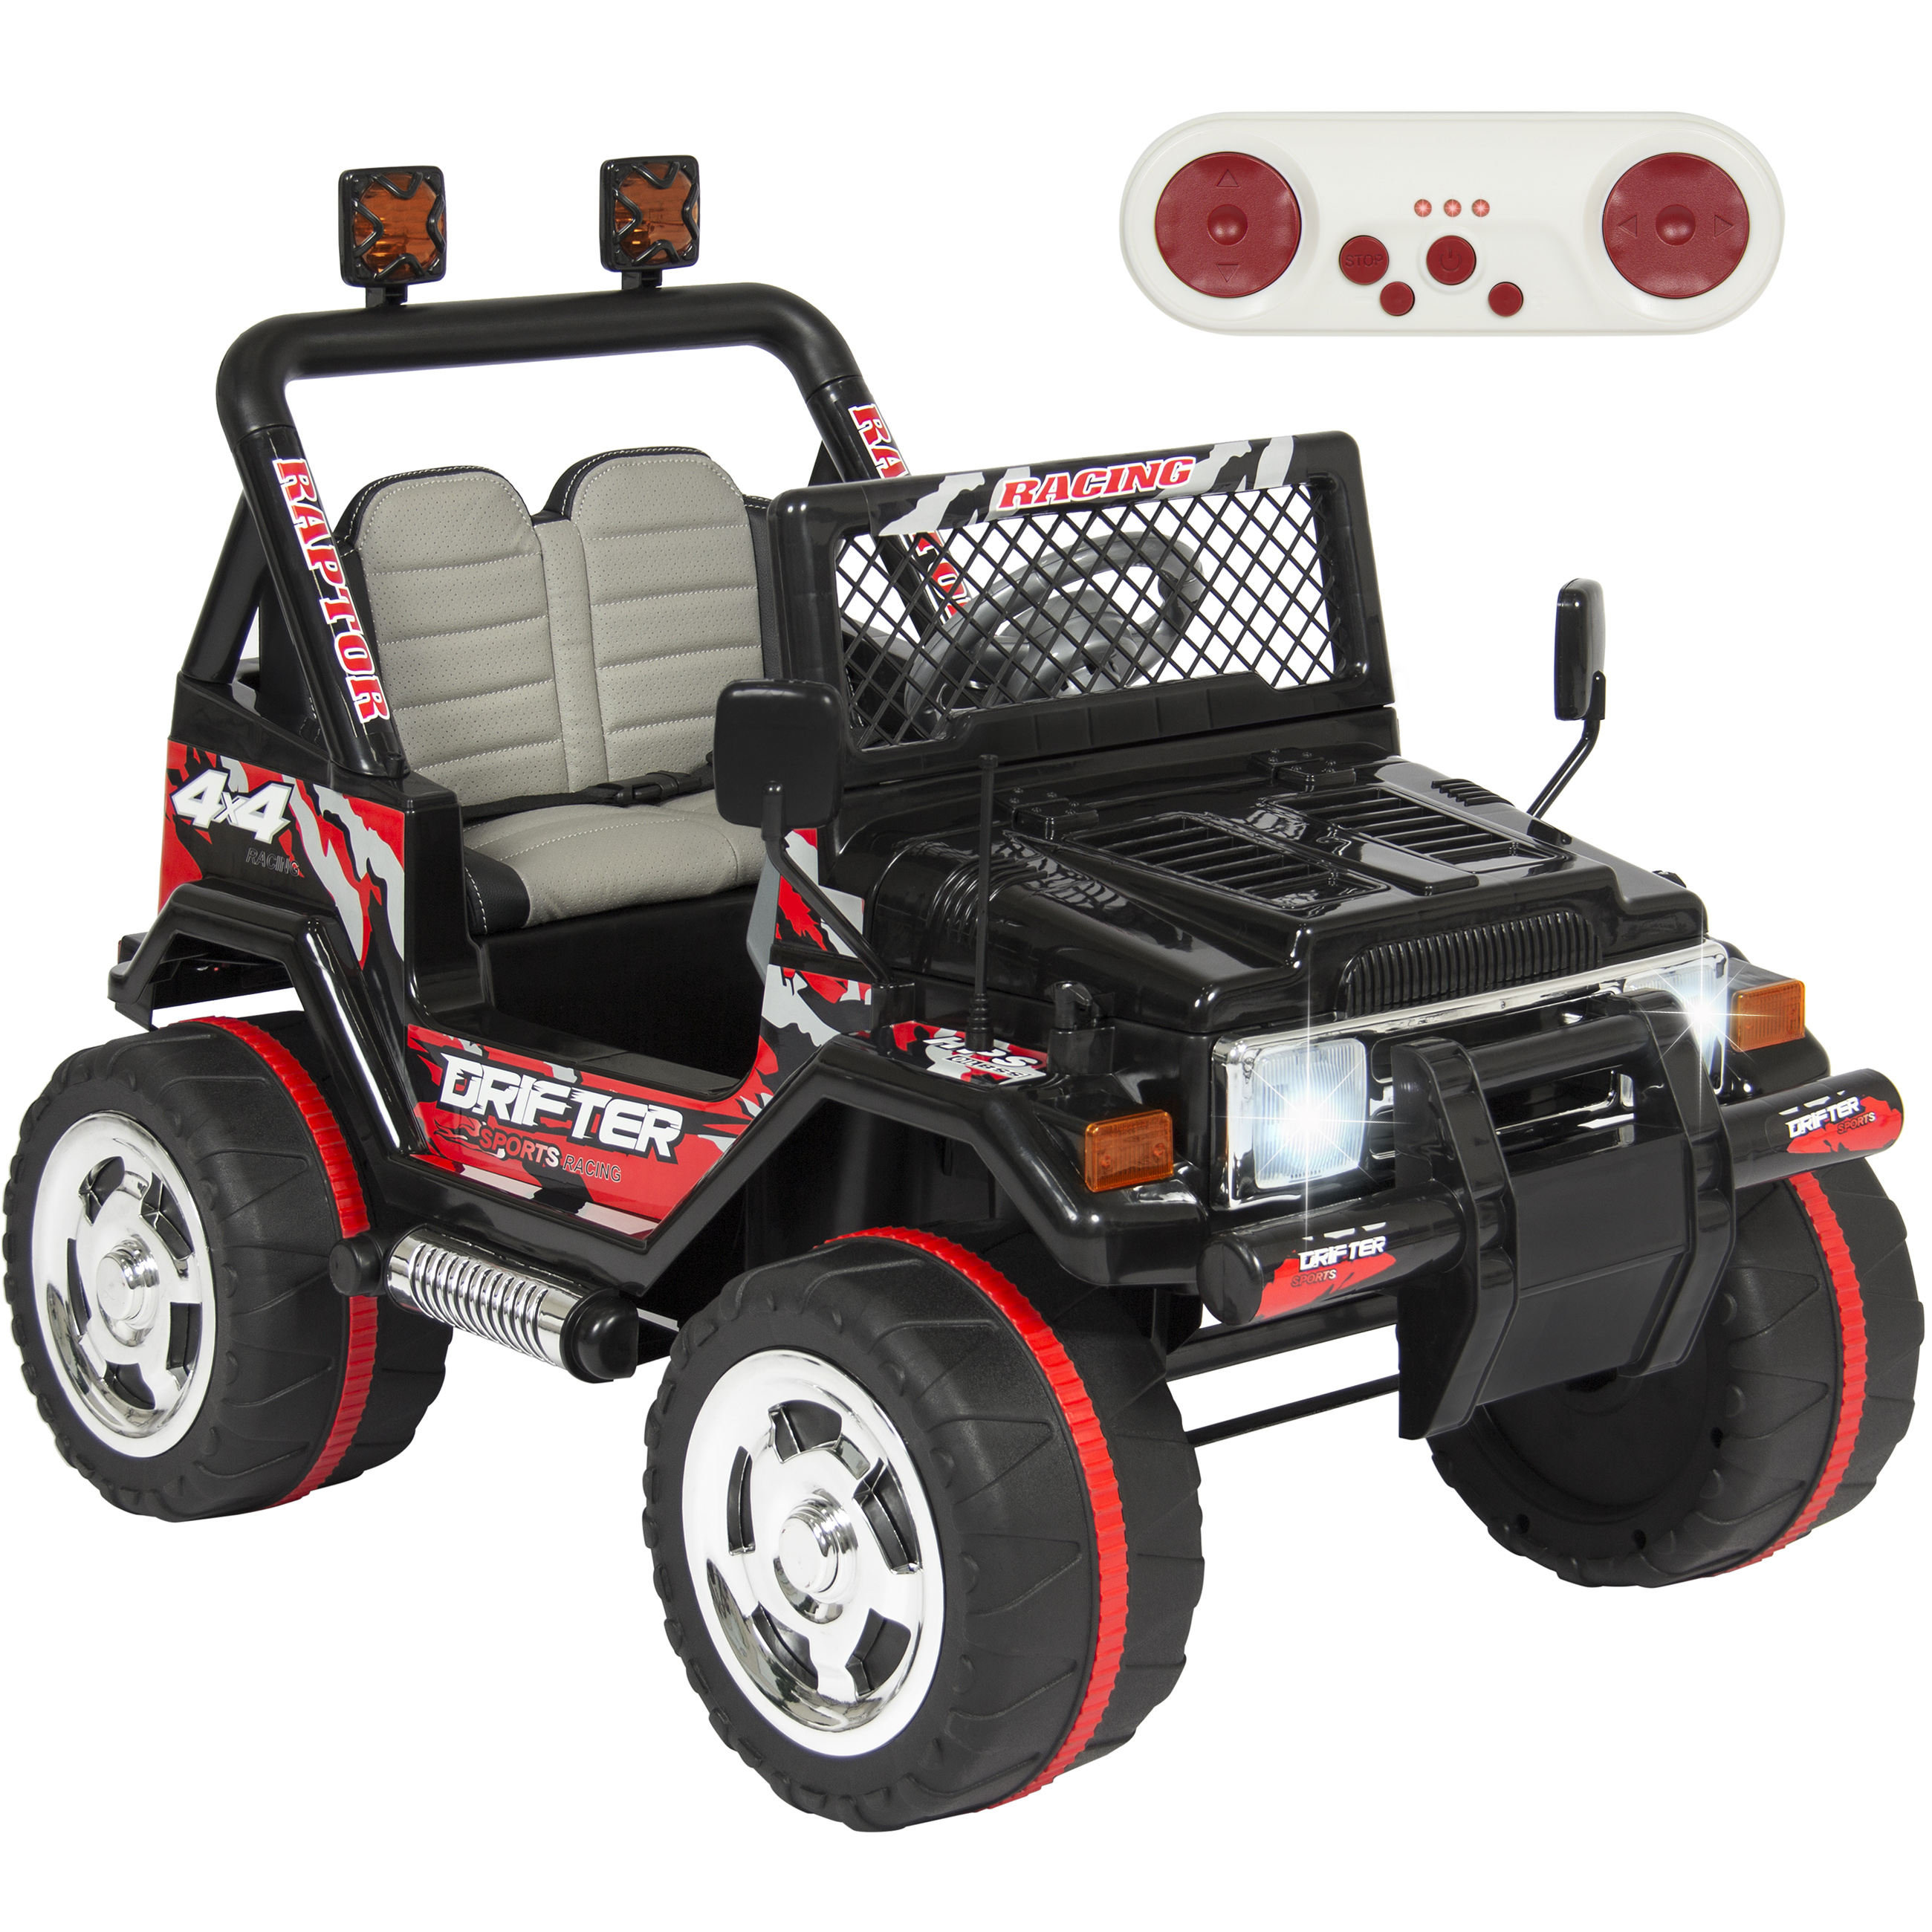 Best Choice Products 12V Ride On Car Truck w/ Remote Control, Leather Seat, Lights, 2 Speeds- Black